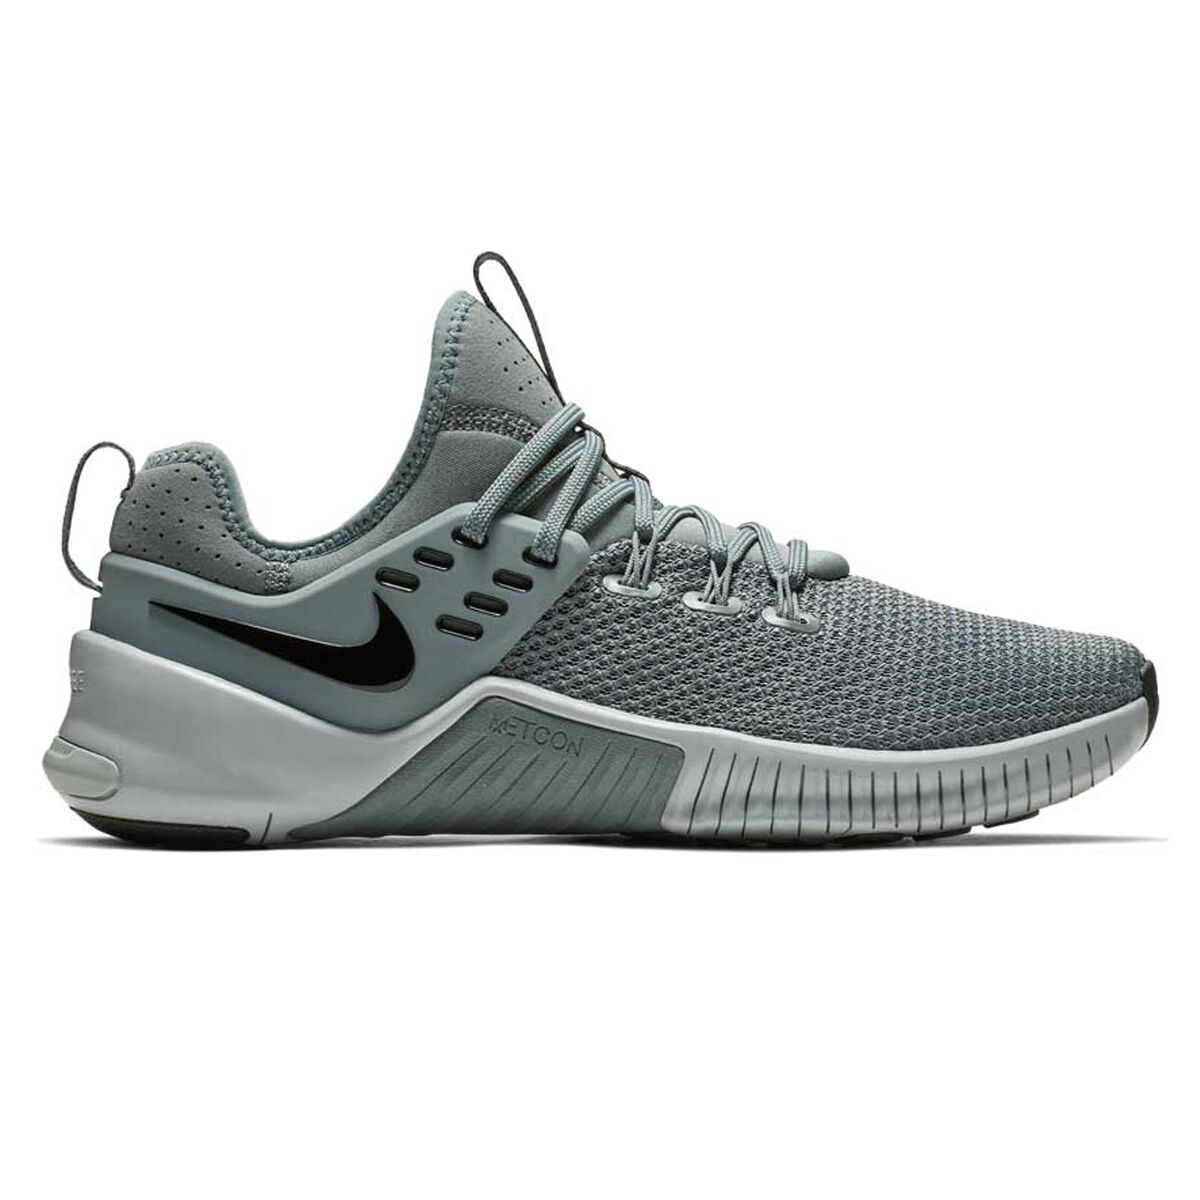 Official Green Bay Packers Nike Free Metcon Shoes, Packers